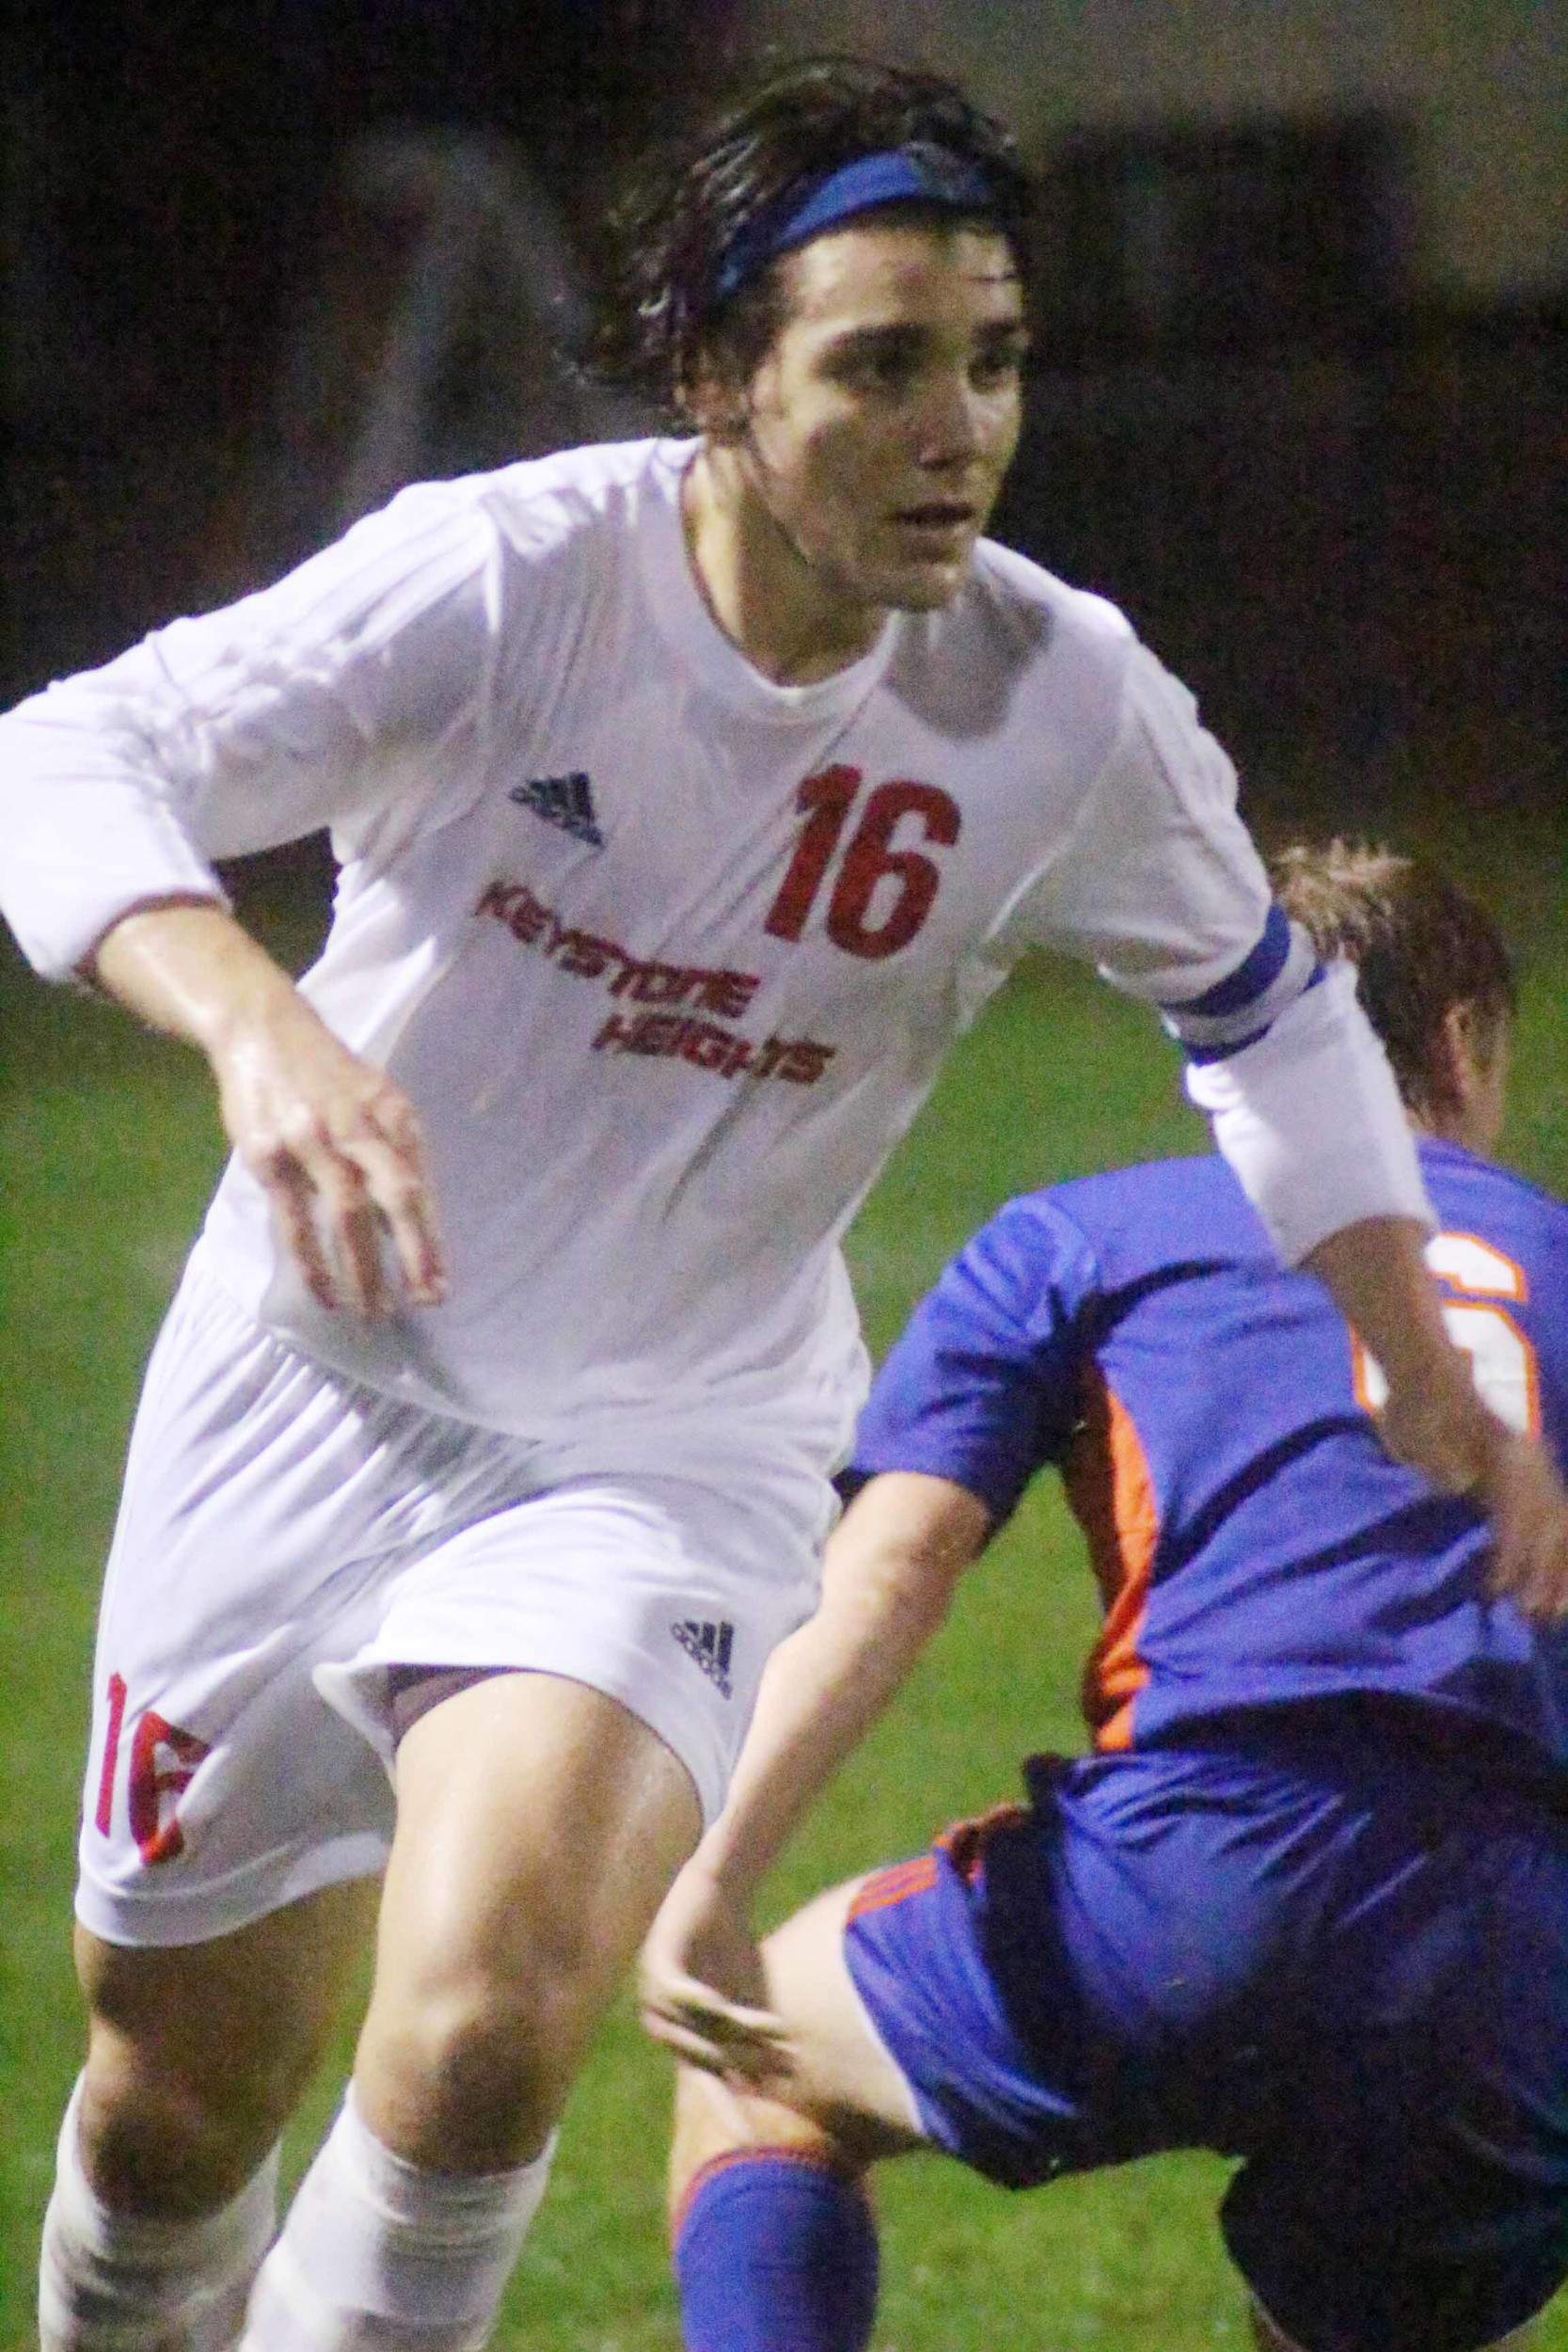 Keystone Heights senior Karl Dionisi was driving force in Indians' district title and region playoff berth.